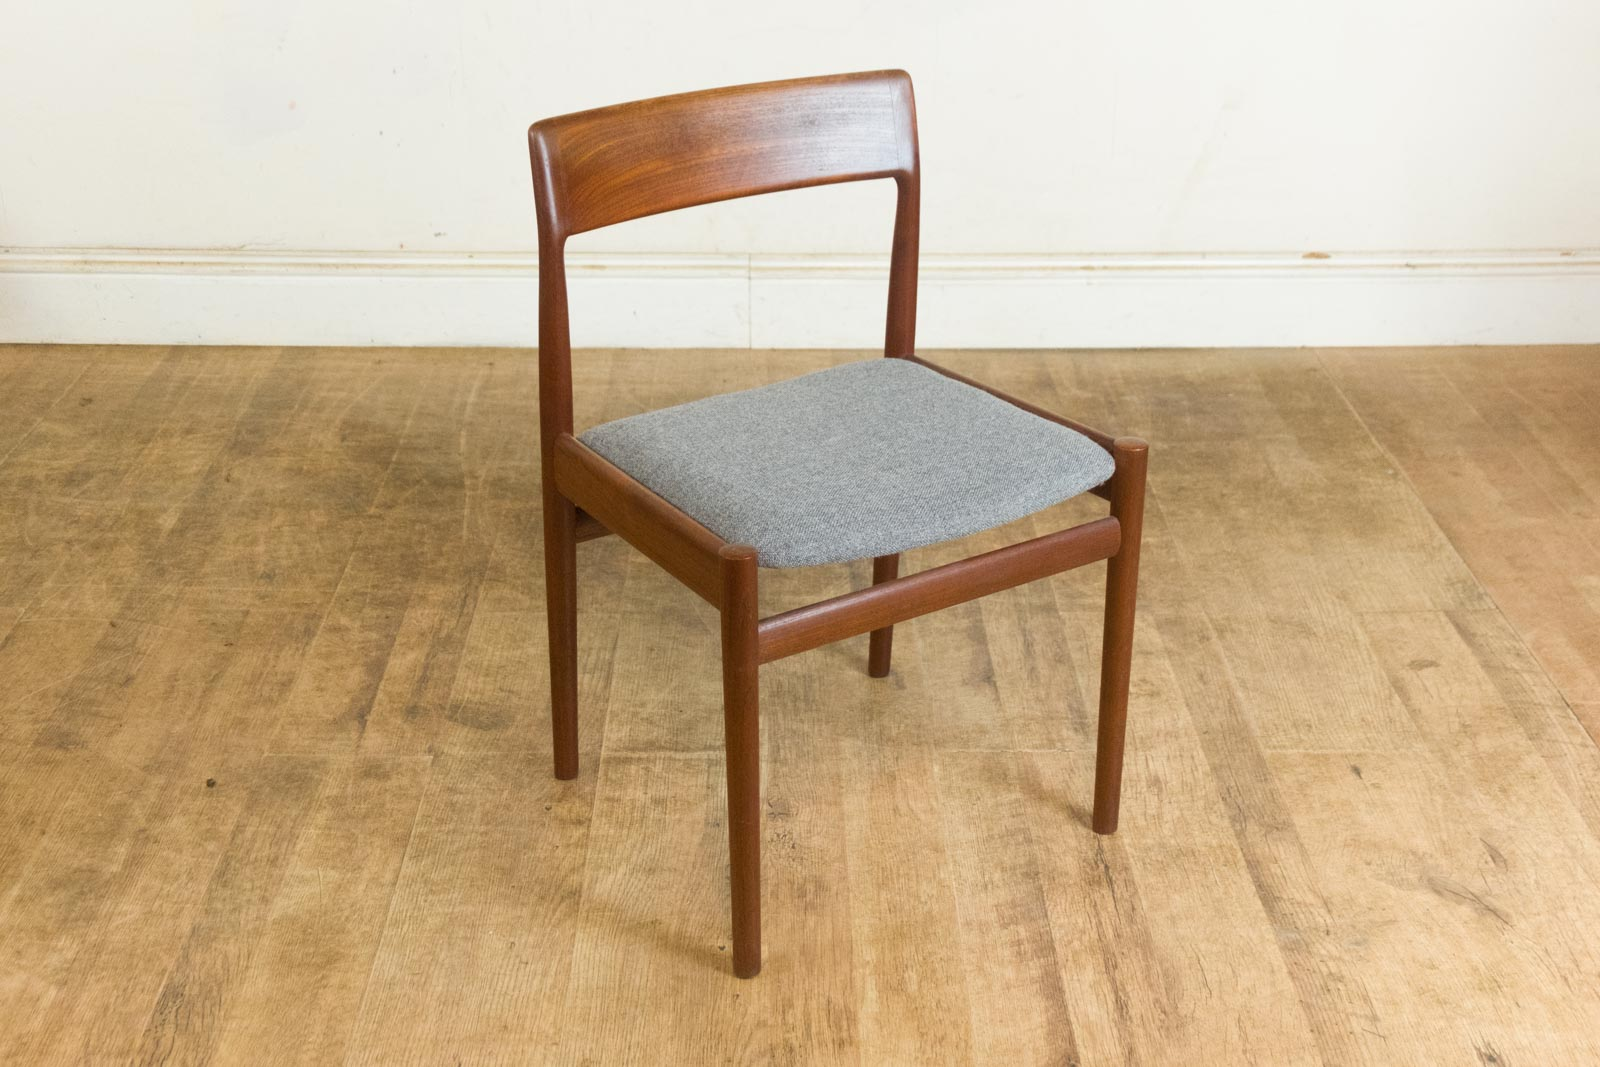 Retro Dining Chair Vintage Retro Danish Style Teak Mid Century Dining Chairs